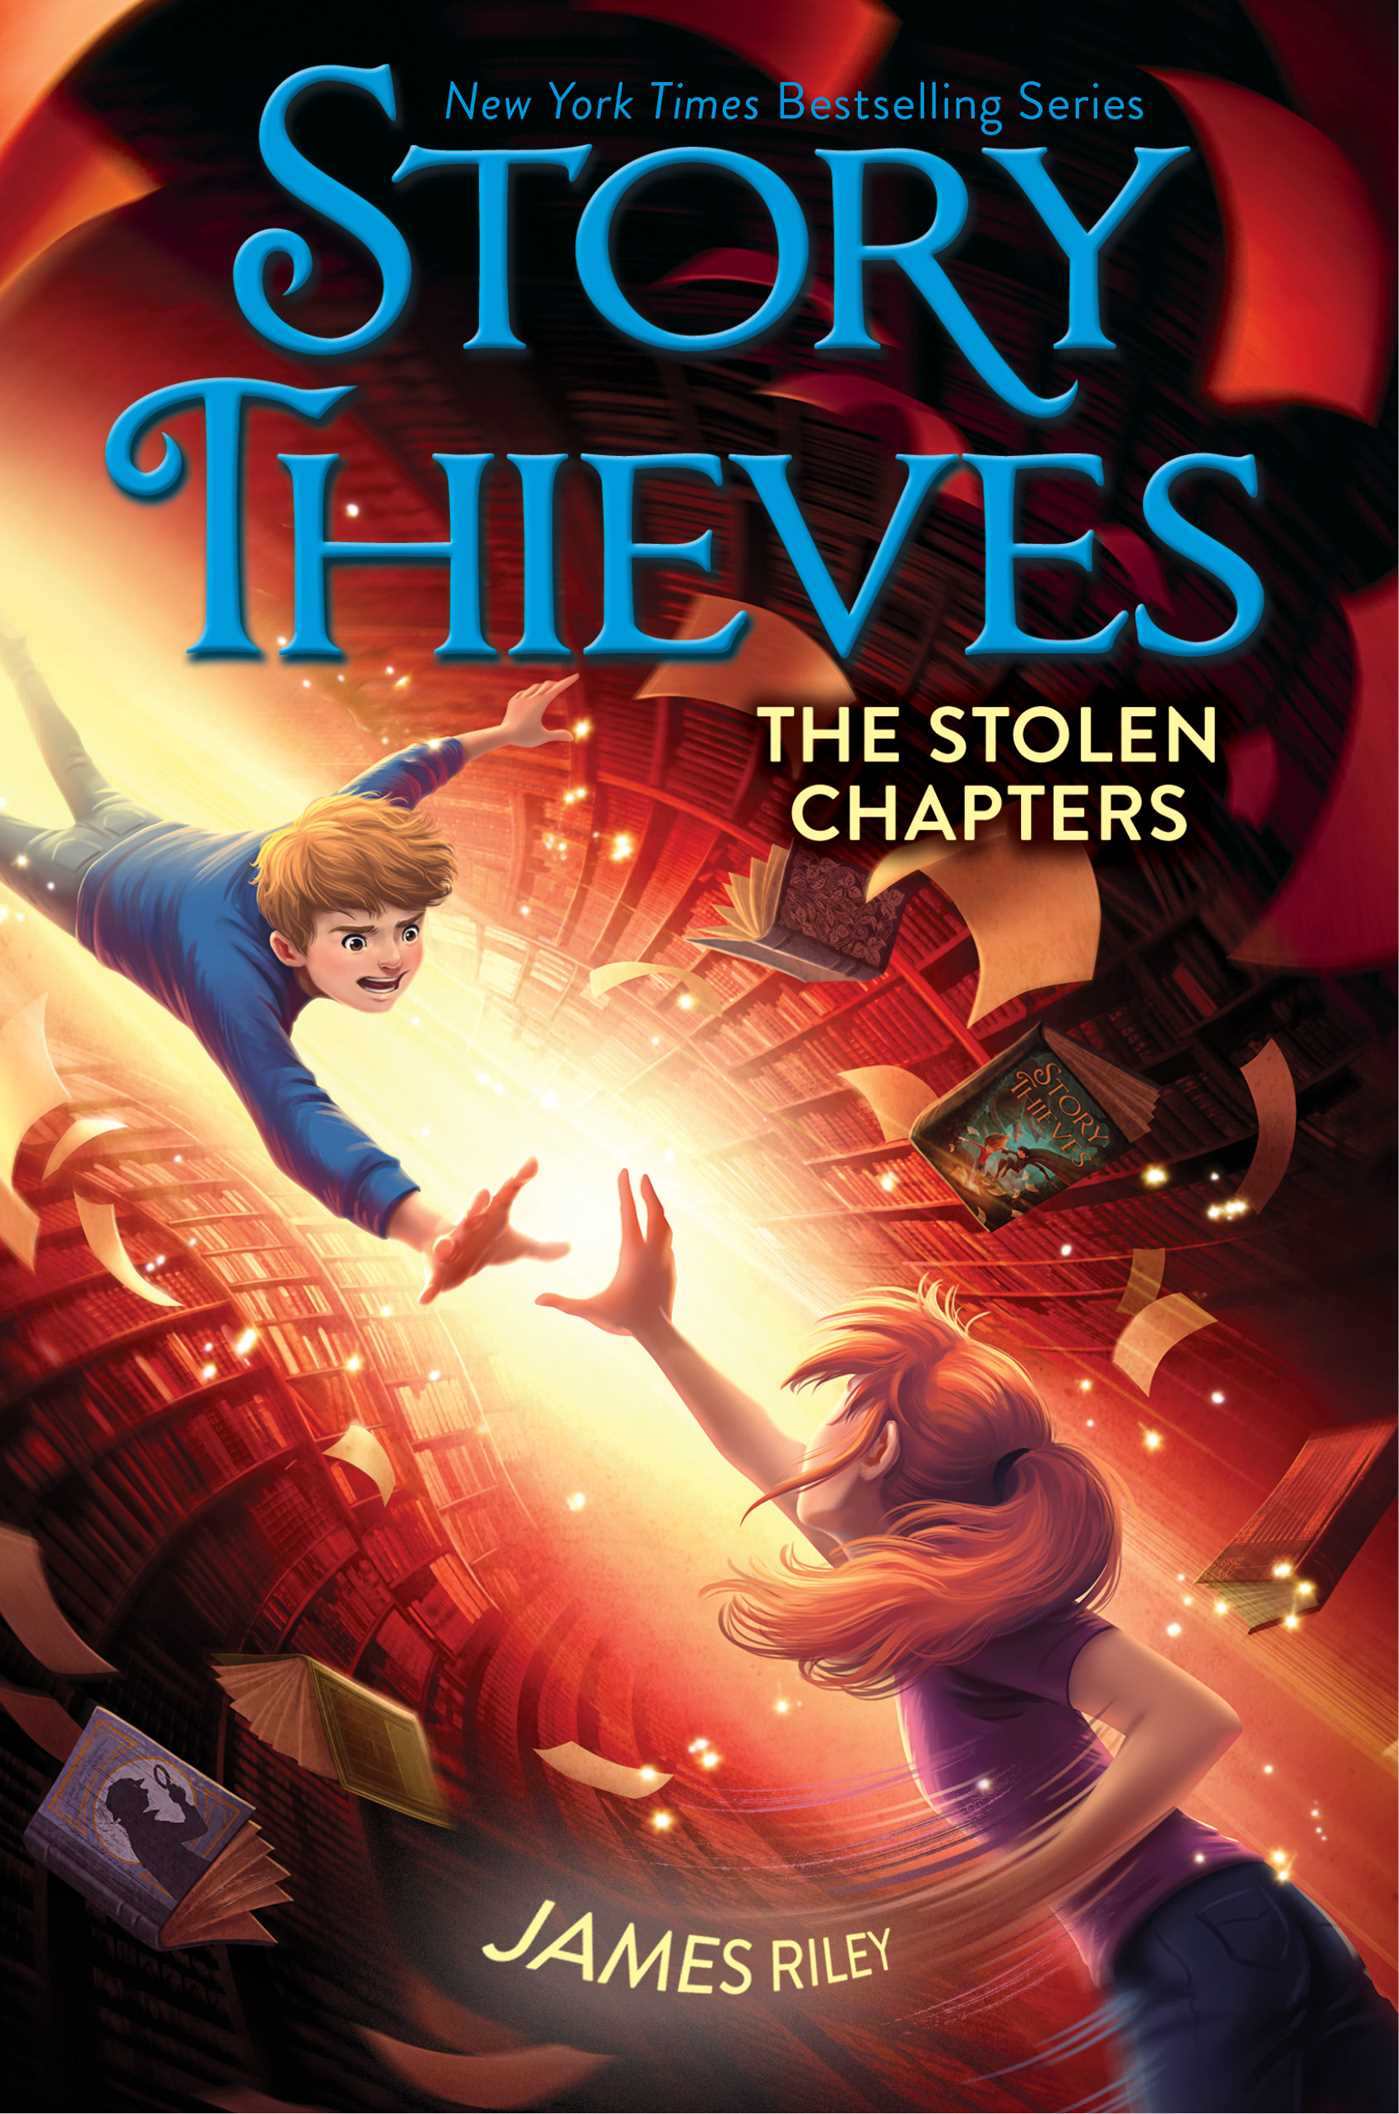 the stolen chapters book by james riley chris eliopoulos the stolen chapters 9781481409223 hr